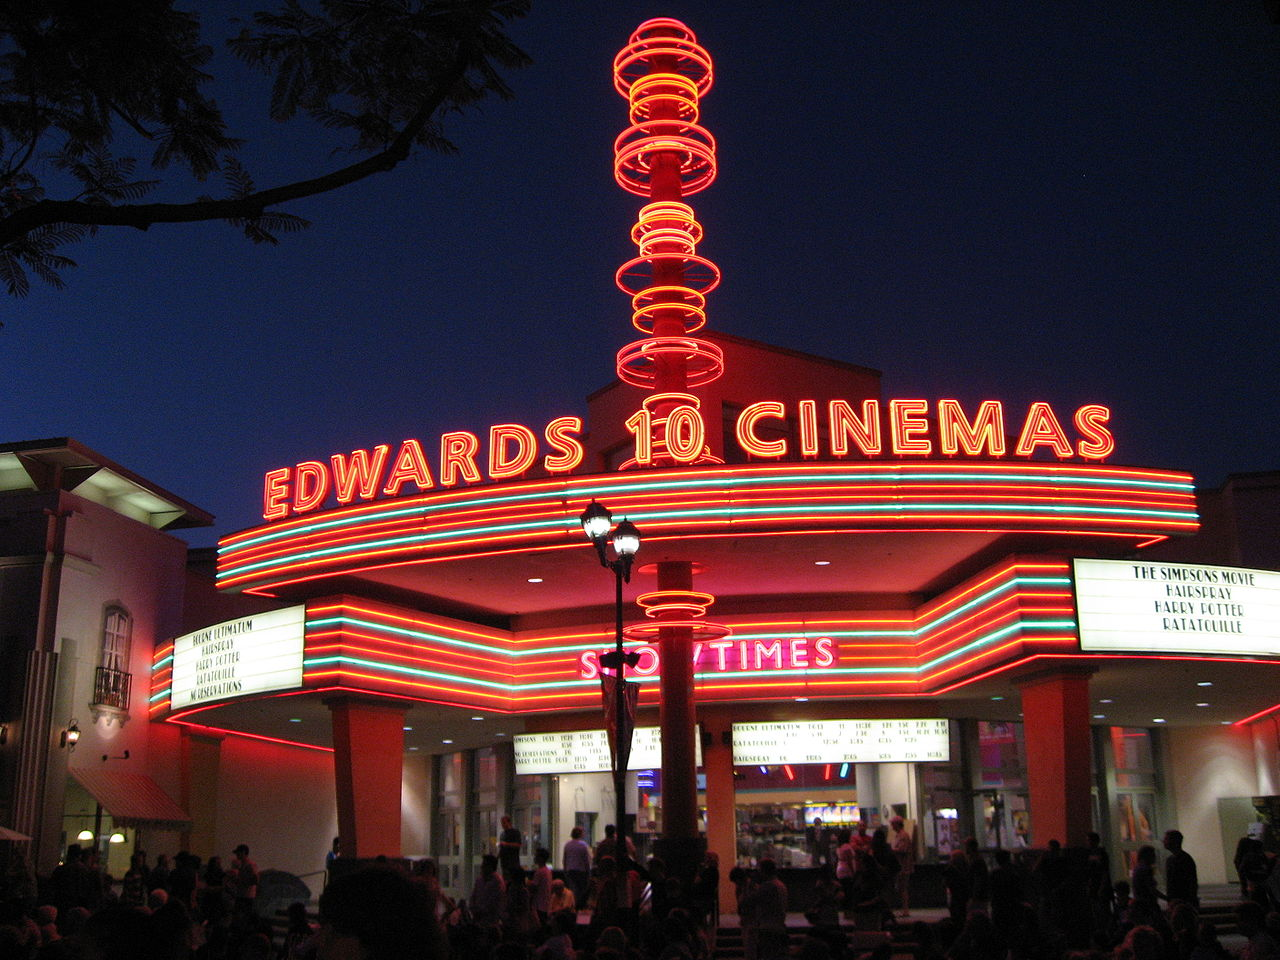 History of Edwards Cinema of Regal Movie Theaters Edwards Cinemas is one of the theater chains with IMAX screens and stadium-style seating which makes going out to see a movie worthwhile. This is just one of the theaters of Regal Entertainment Group.